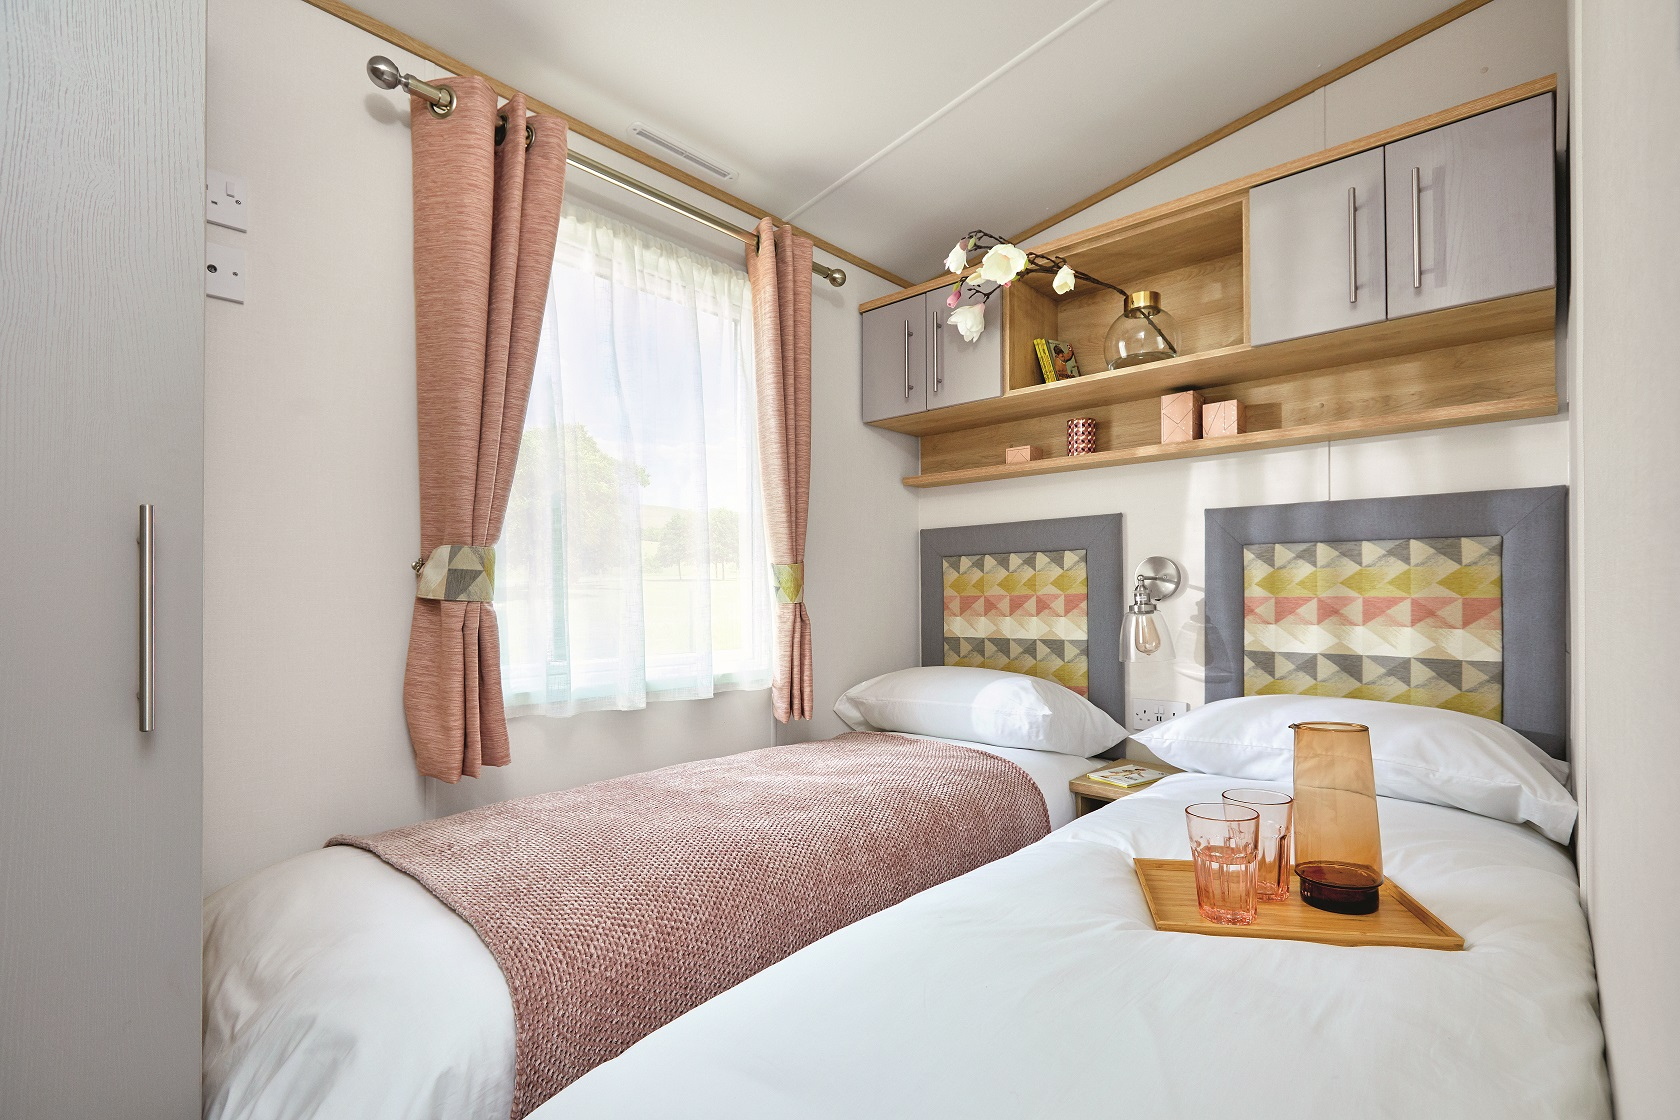 ABI Beverley: New Static Caravans and Holiday Homes for Sale, Langley Moor, Durham Image 4